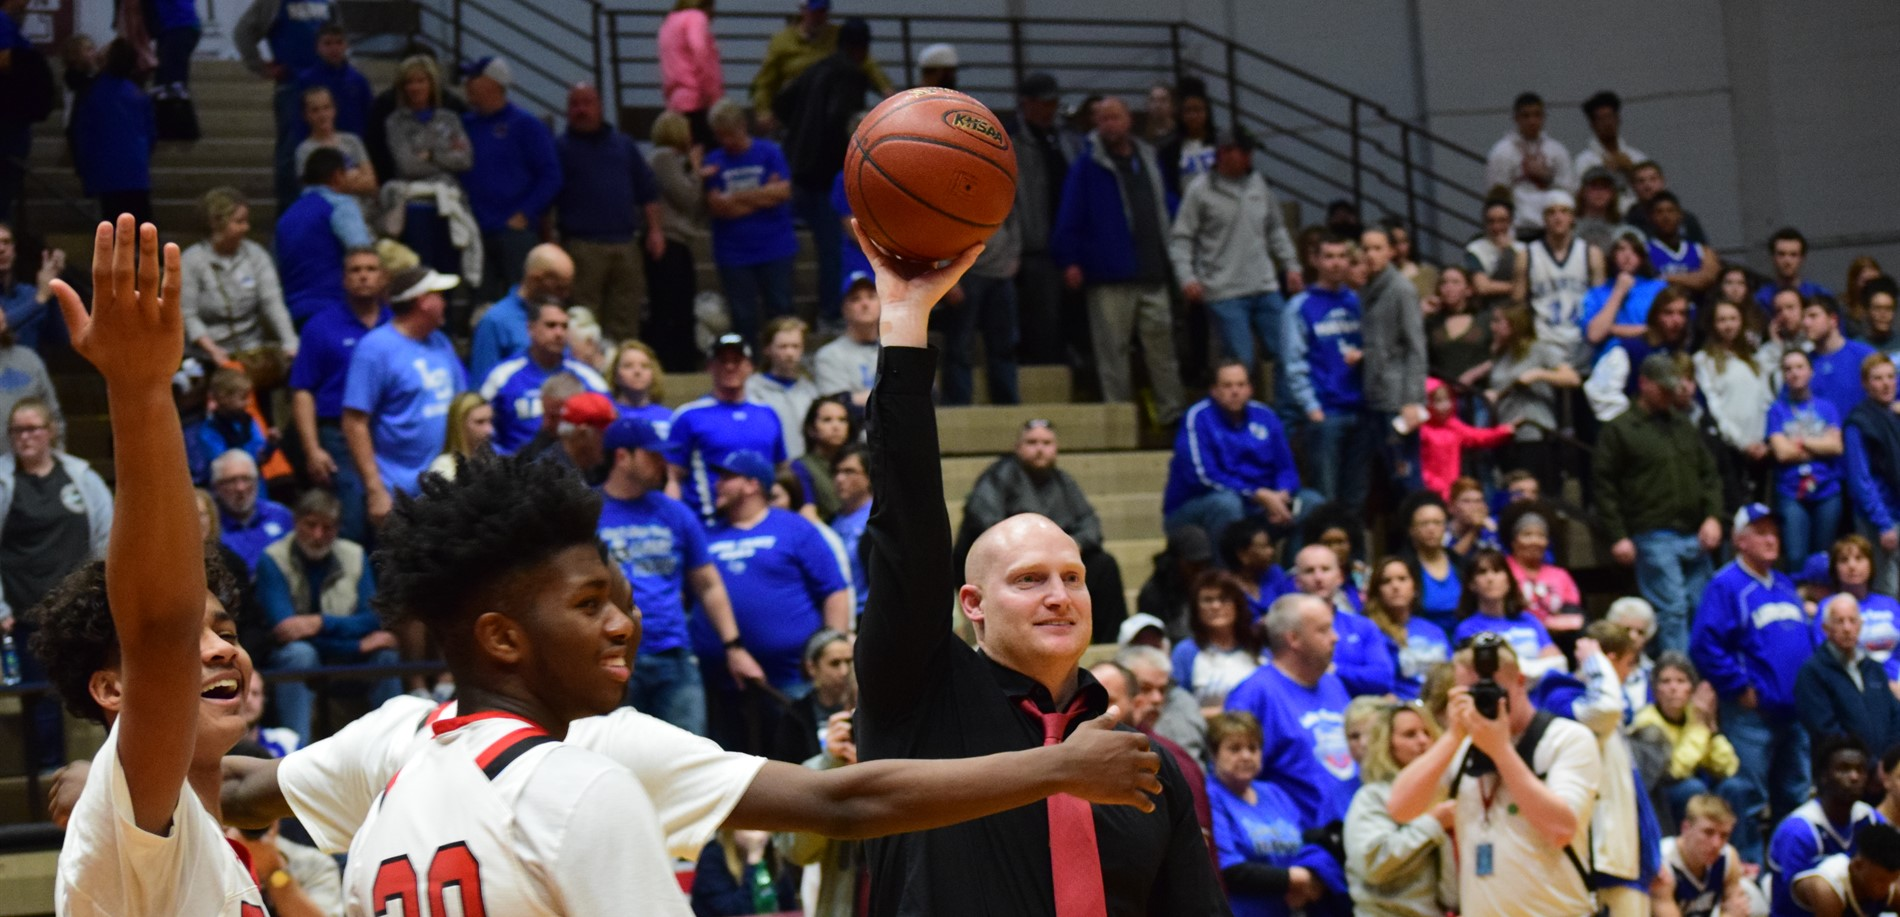 Coach Jared McCurry celebrates the JHHS boys basketball 5th Region Championship win.